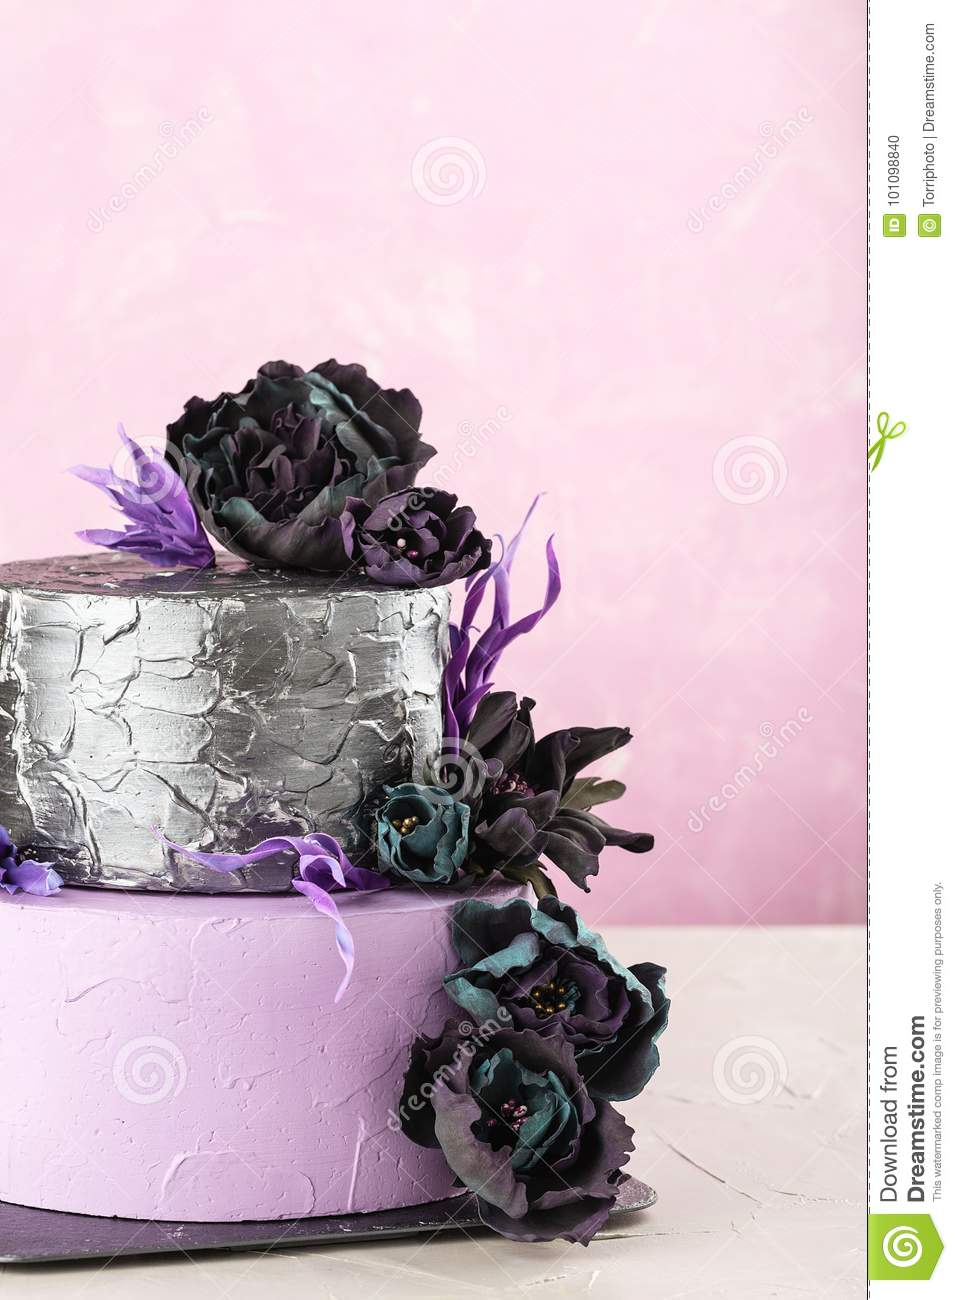 Tiered Wedding Cake With Black Fake Flowers On Pink Background Stock ...